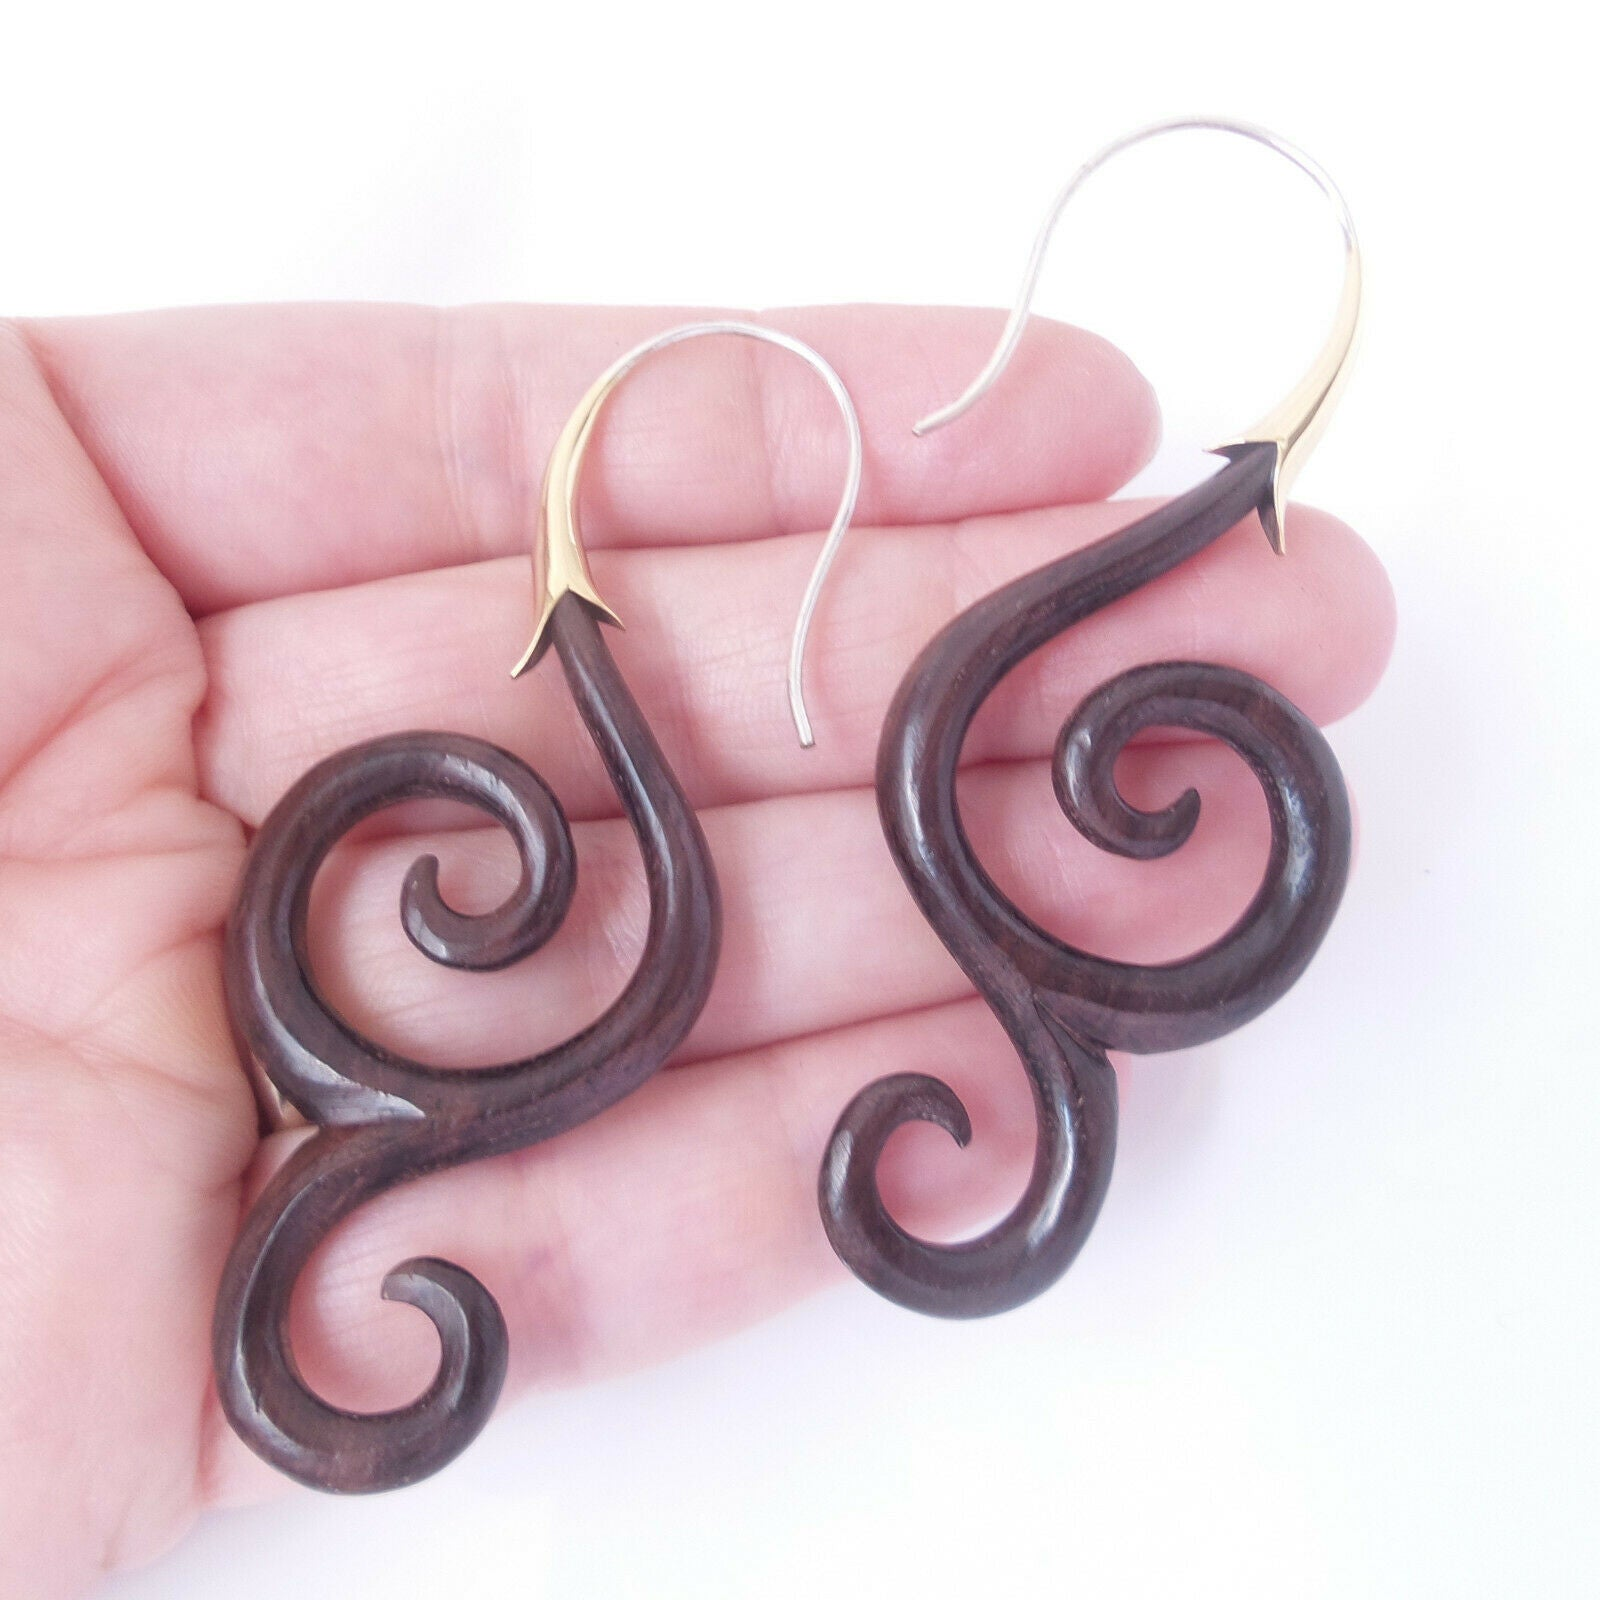 Carved Wood Spiral Drop Earrings 925 Sterling Silver Hook Boho Chic Jewelry Gift